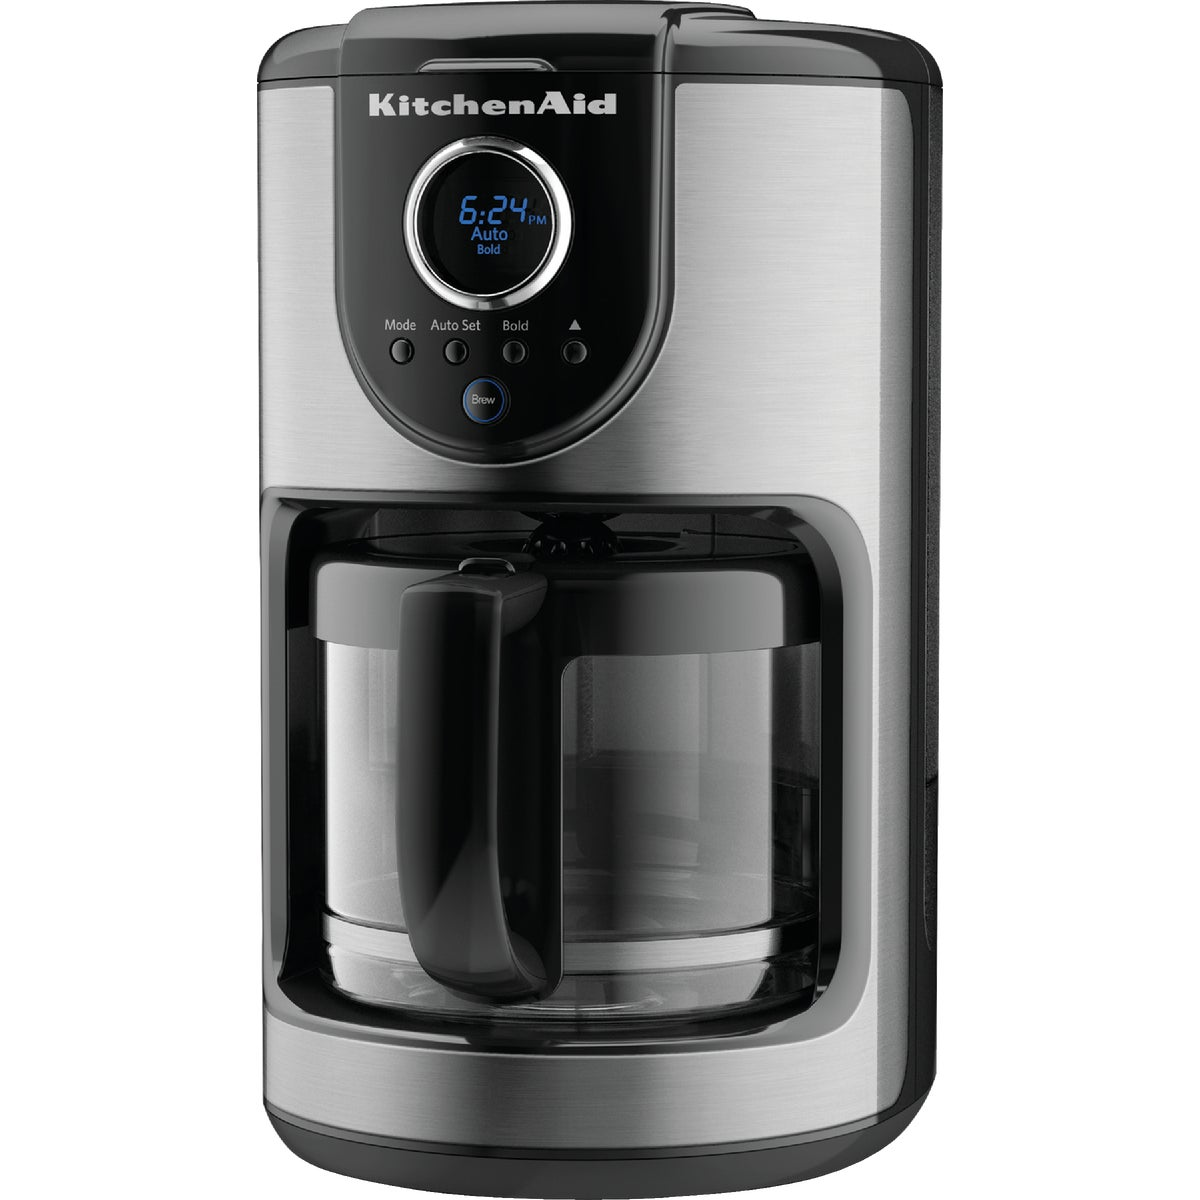 12 CUP COFFEE MAKER - KCM111OB by Kitchenaid Inc